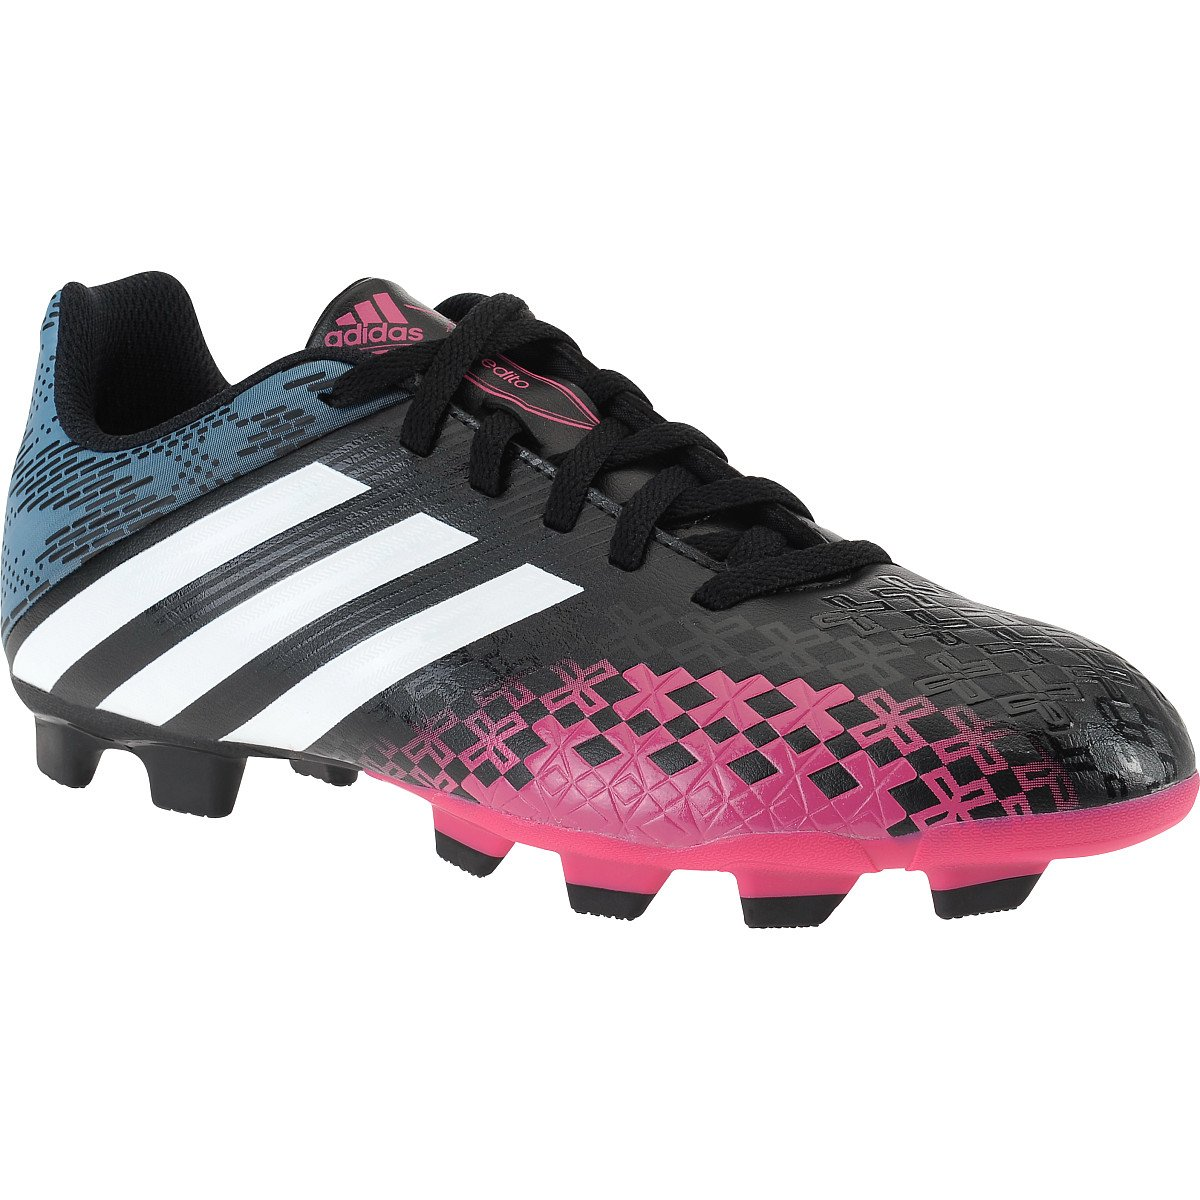 New Adidas Predito LZ TRX FG Black/Pink Ladies 10